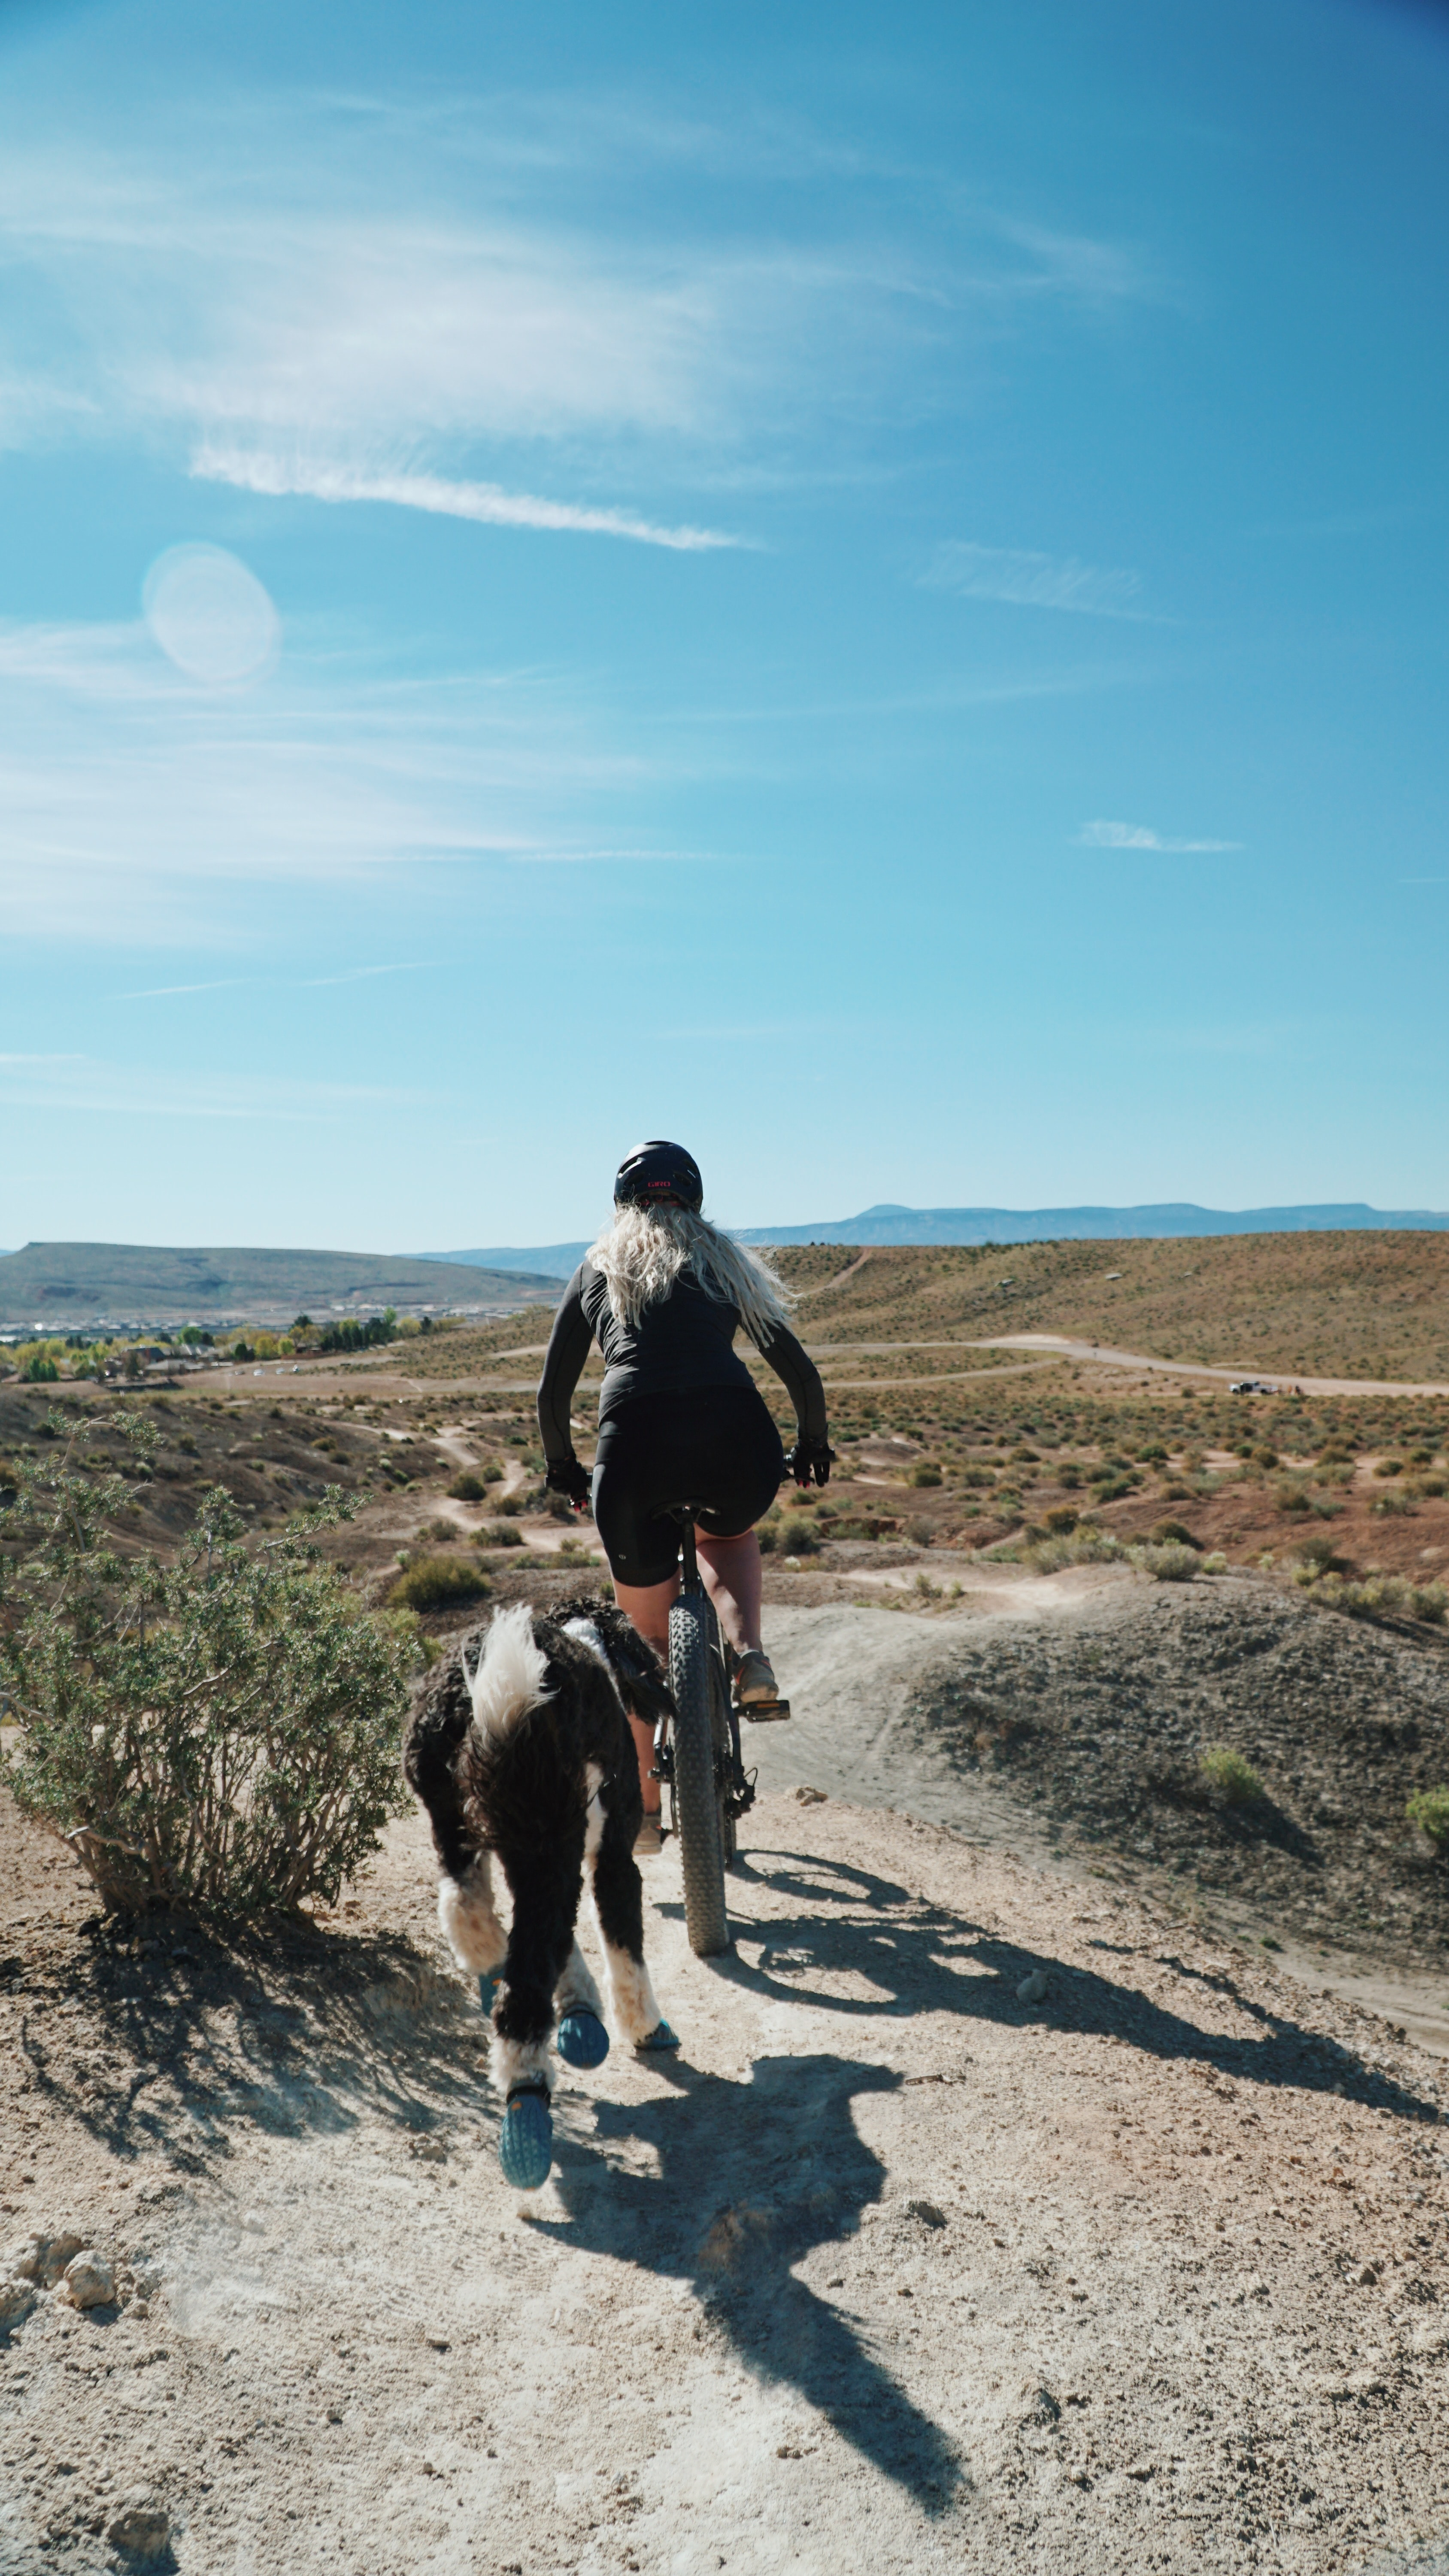 woman riding fat bike running on road with black and white foal during daytime